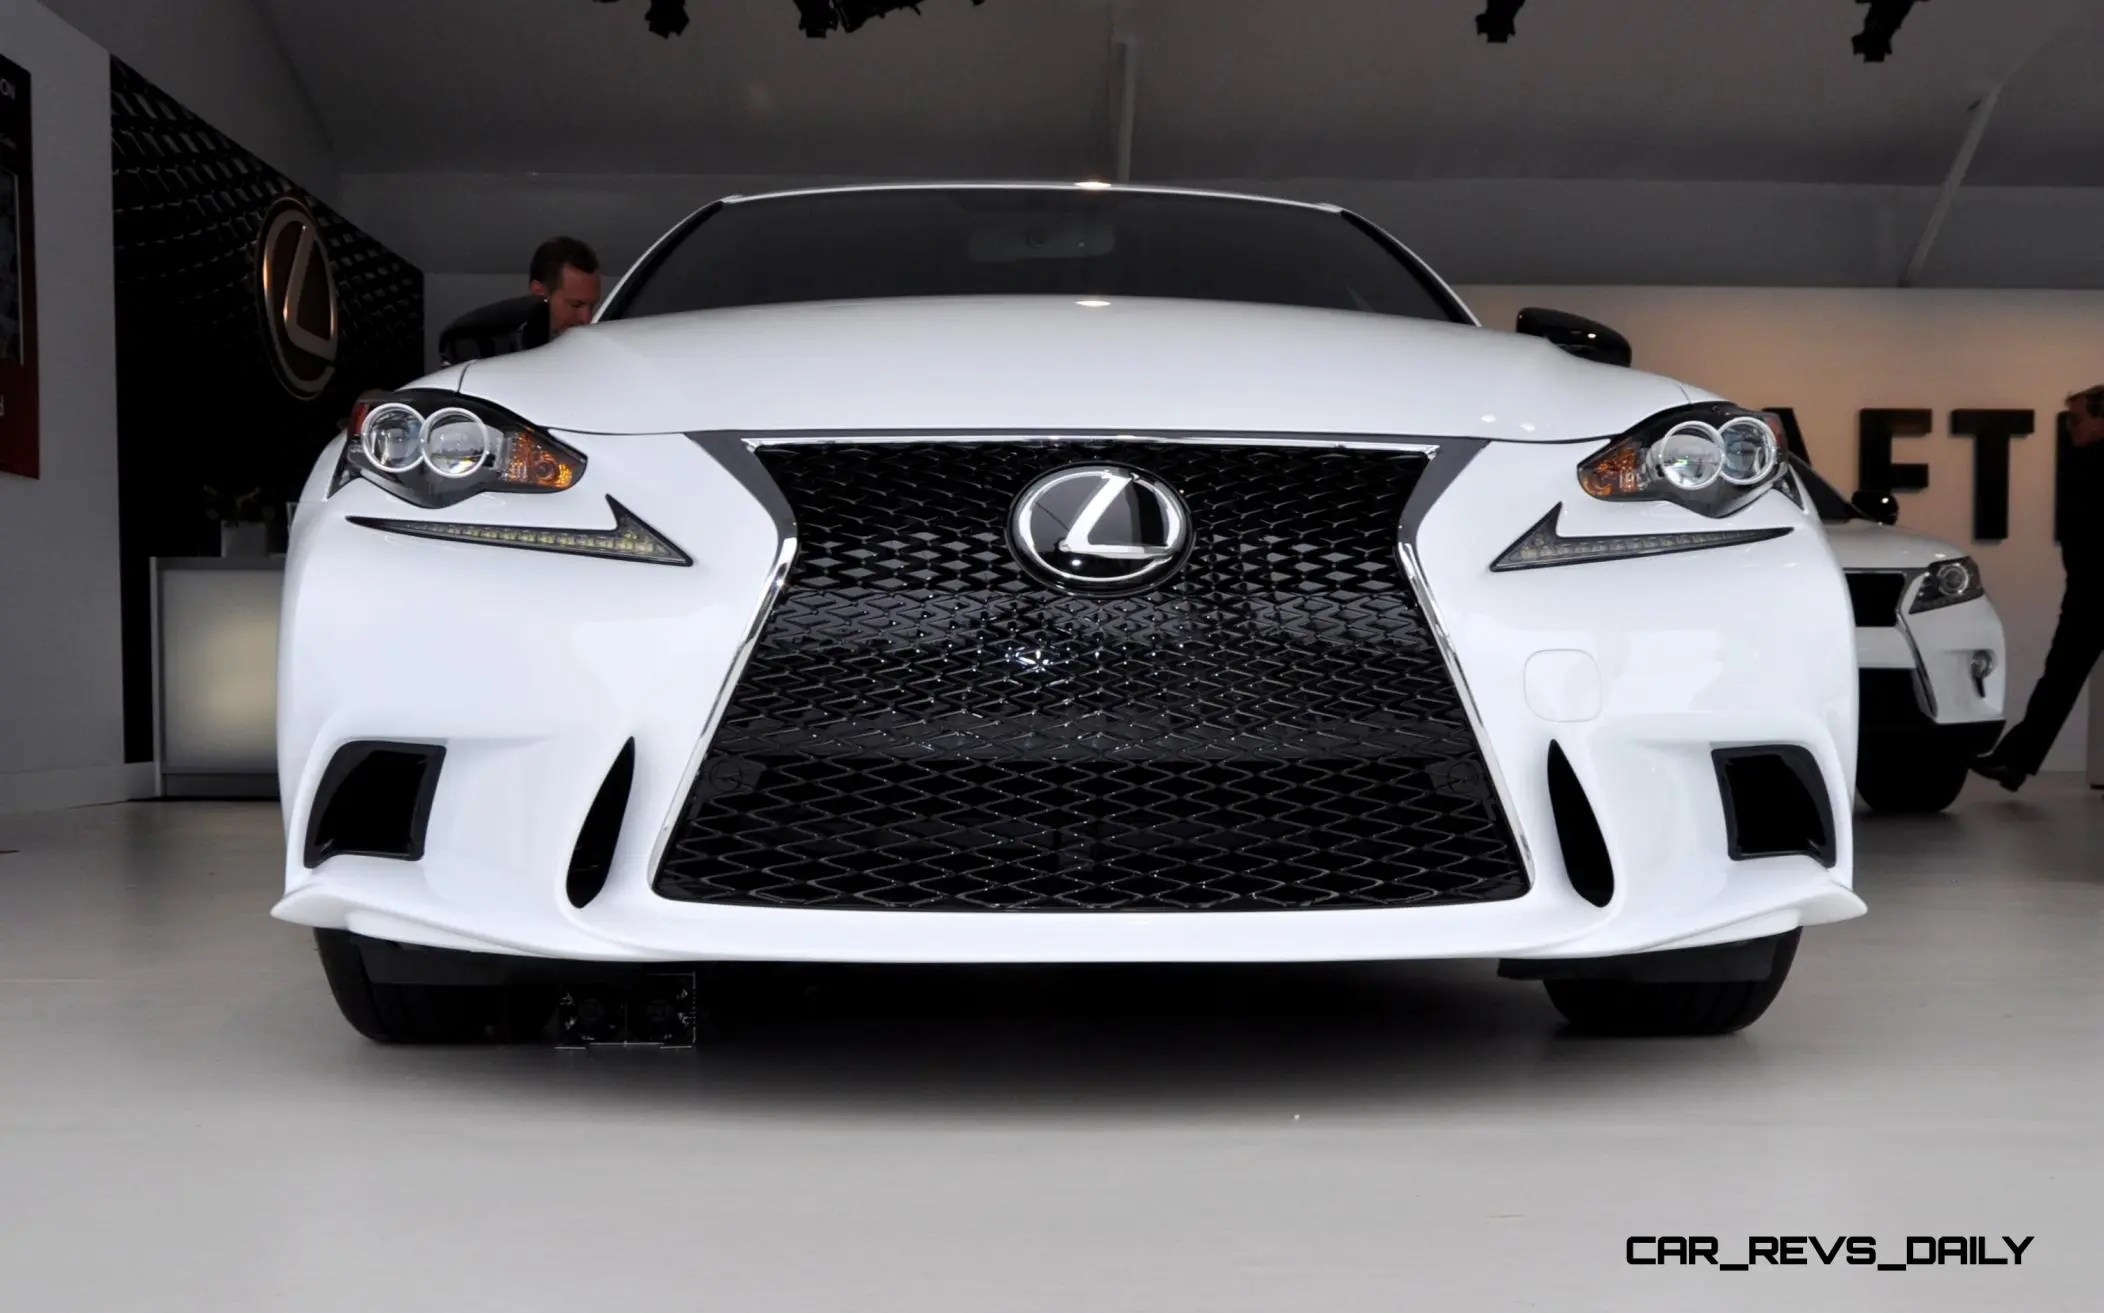 Car Revs Daily 2015 Lexus IS250 F Sport CRAFTED LINE 4